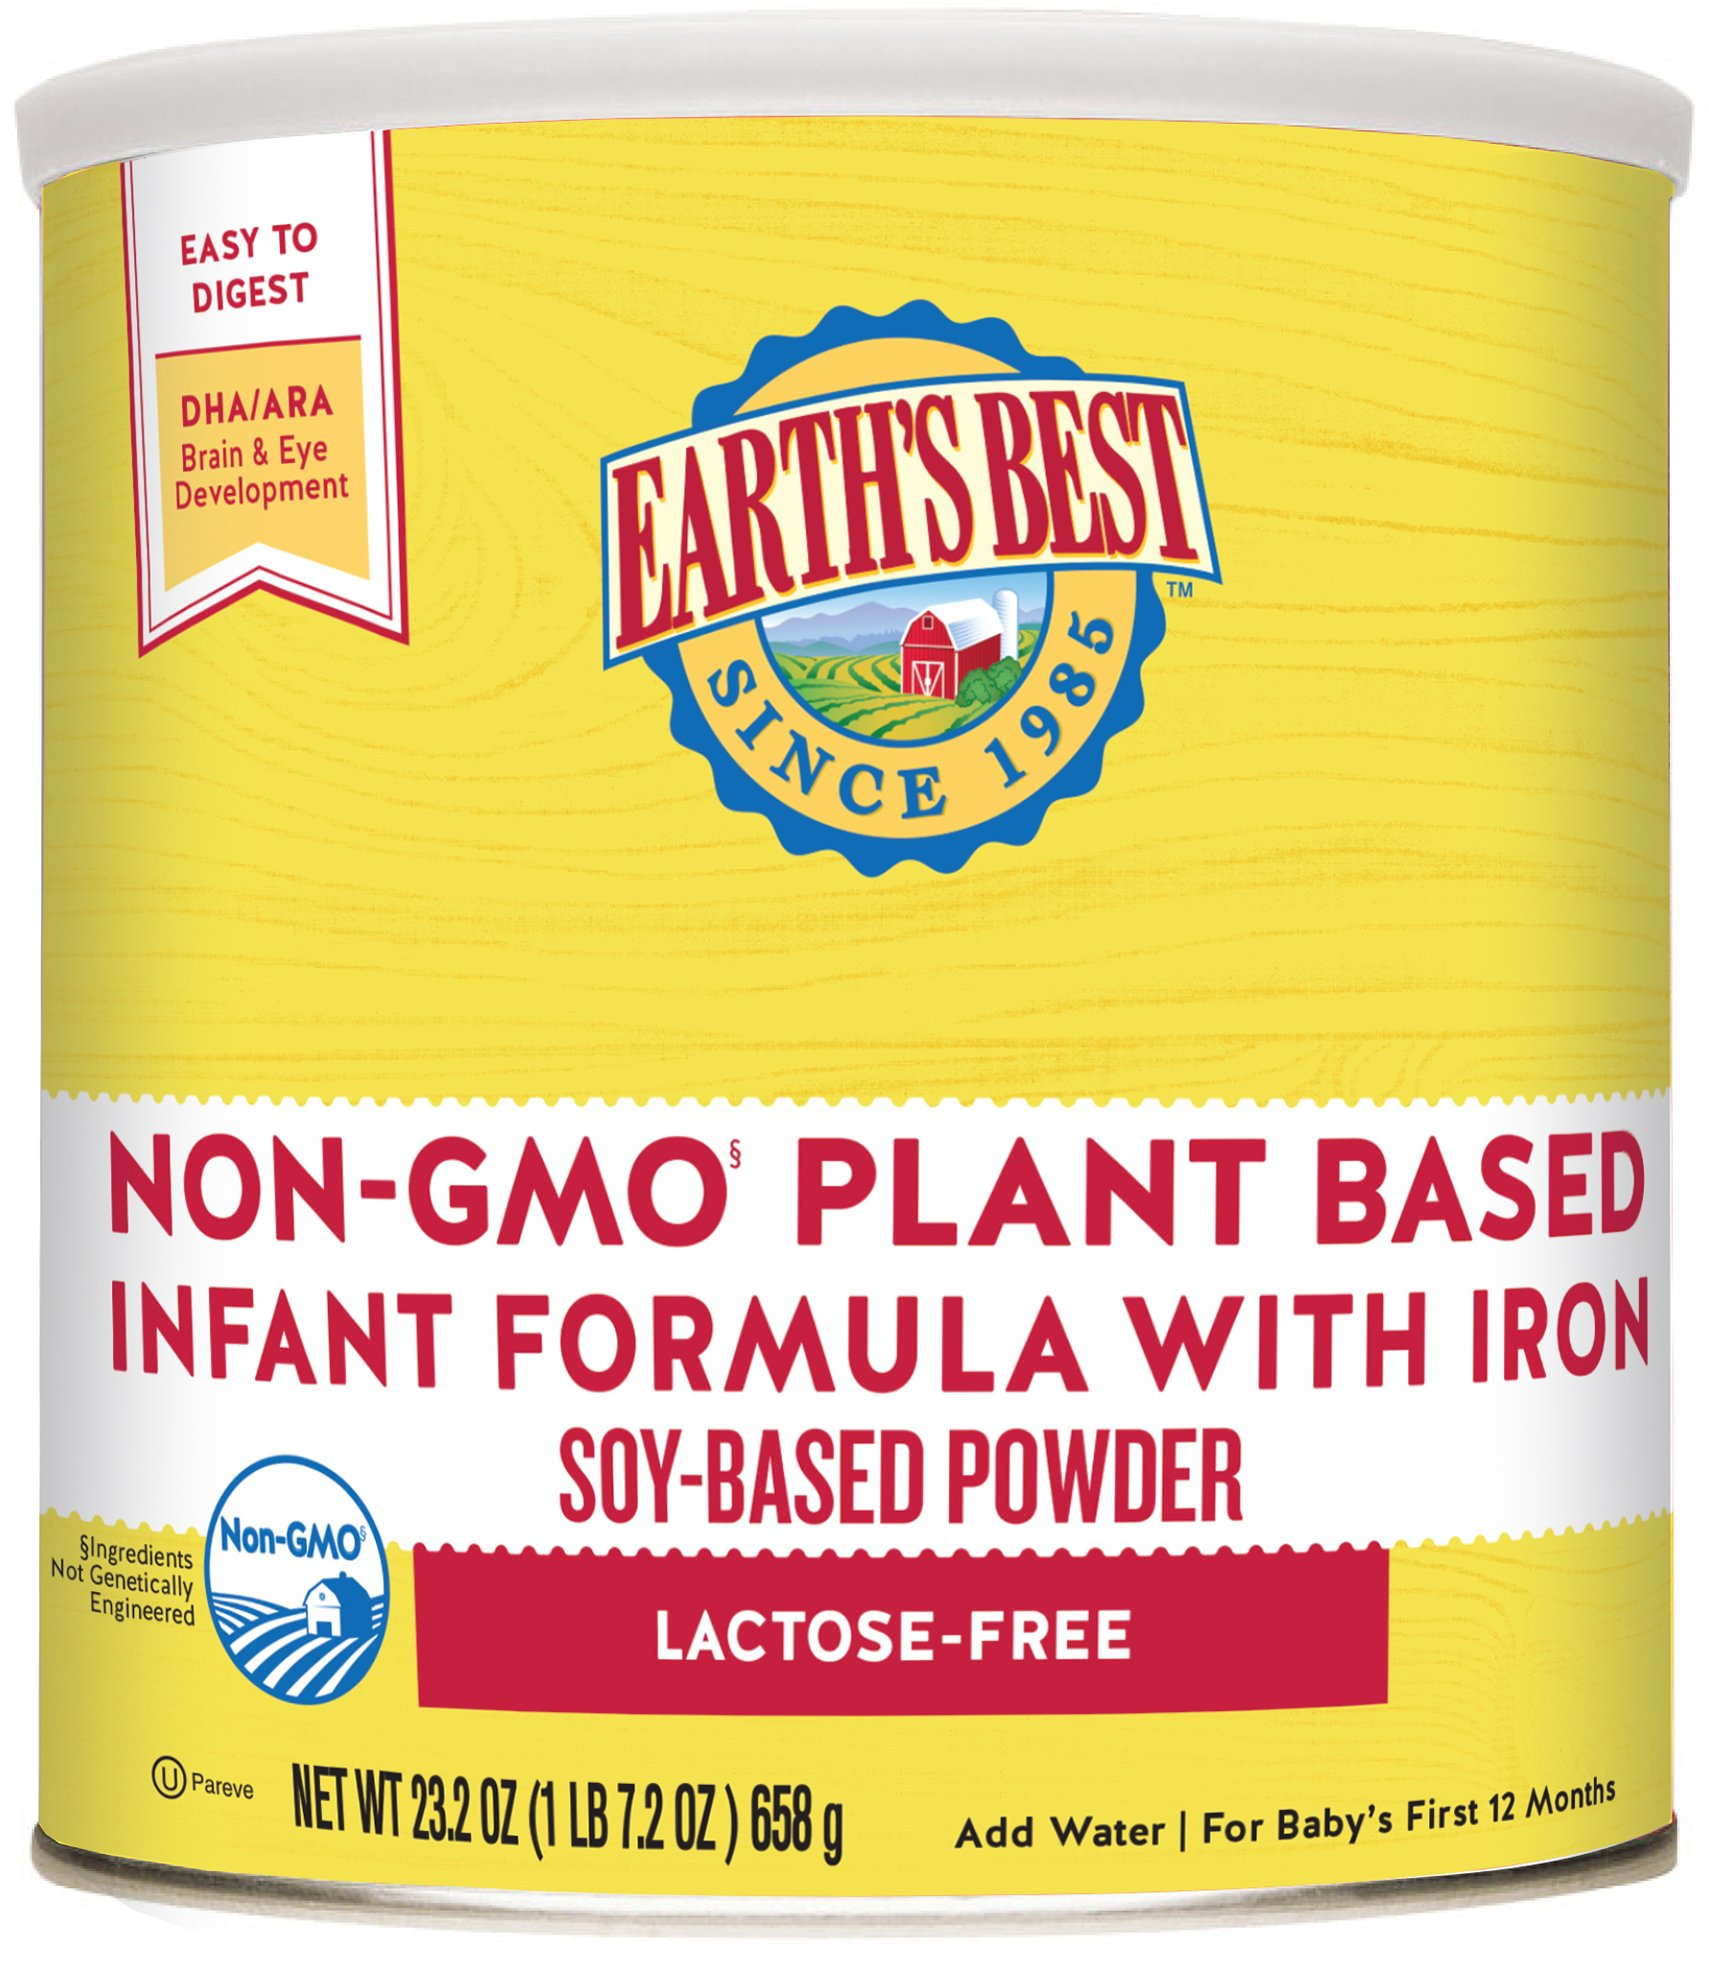 Earth's Best Non-GMO Soy Plant Based Infant Powder Formula with Iron, Omega-3 DHA & 6 ARA, 23.2 oz. (Pack of 4) (packaging may vary) by Earth's Best